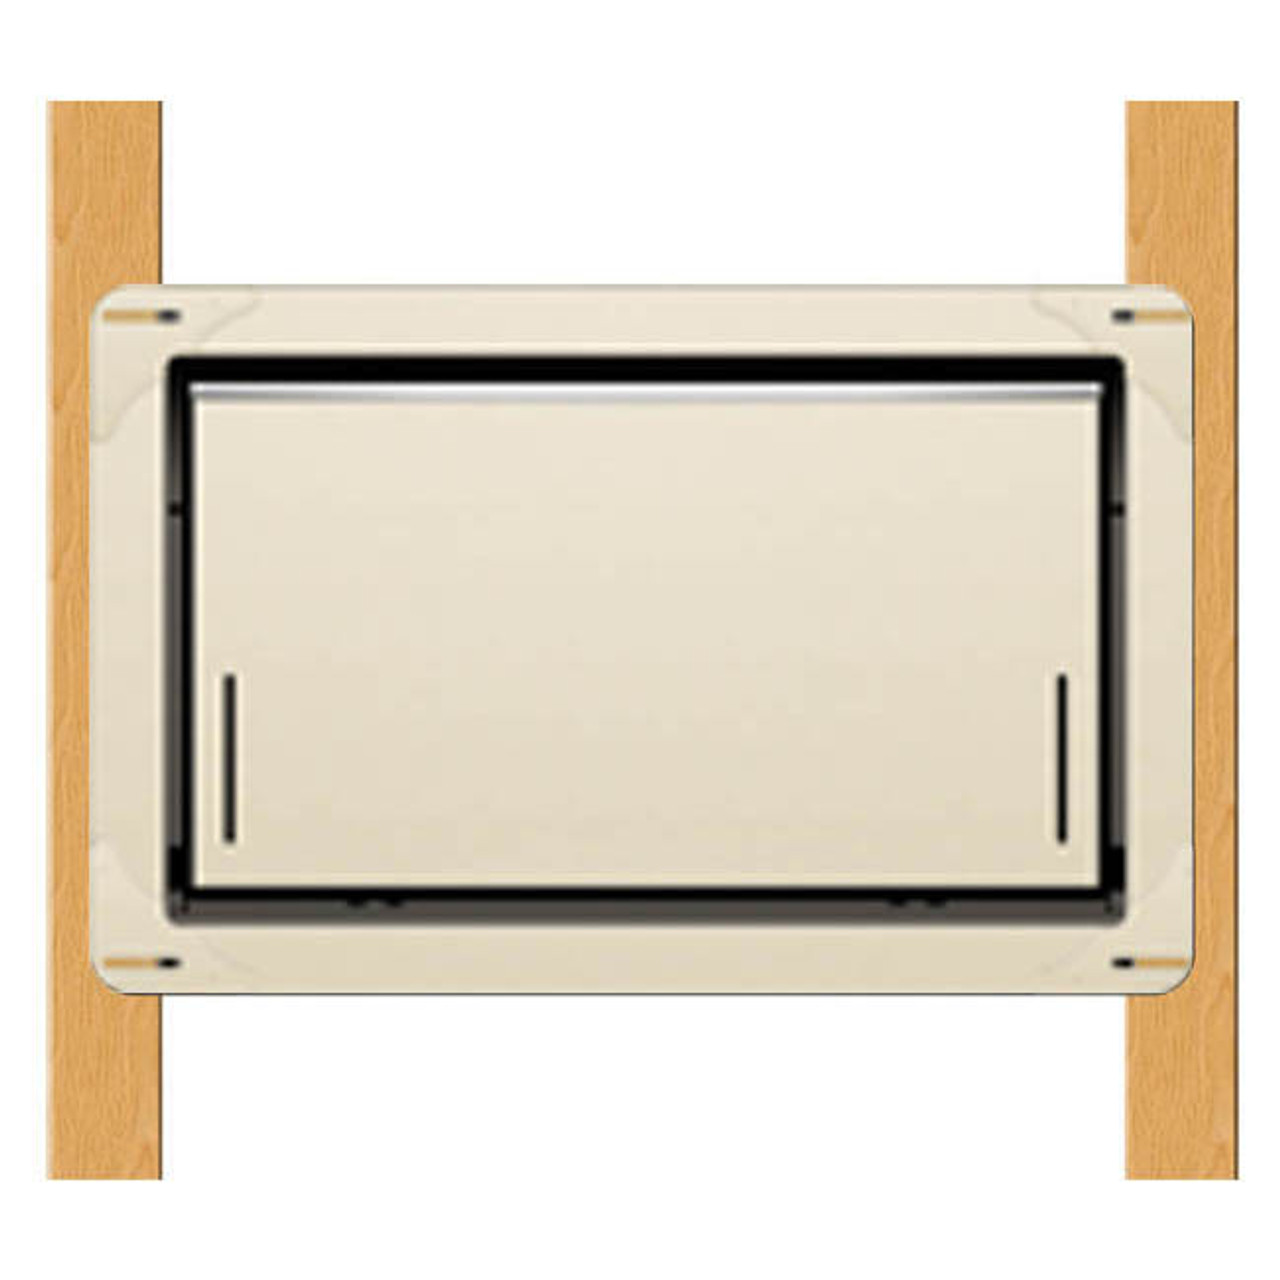 Smart Vent 1540-570 Wood Wall Wheat Flood Vent